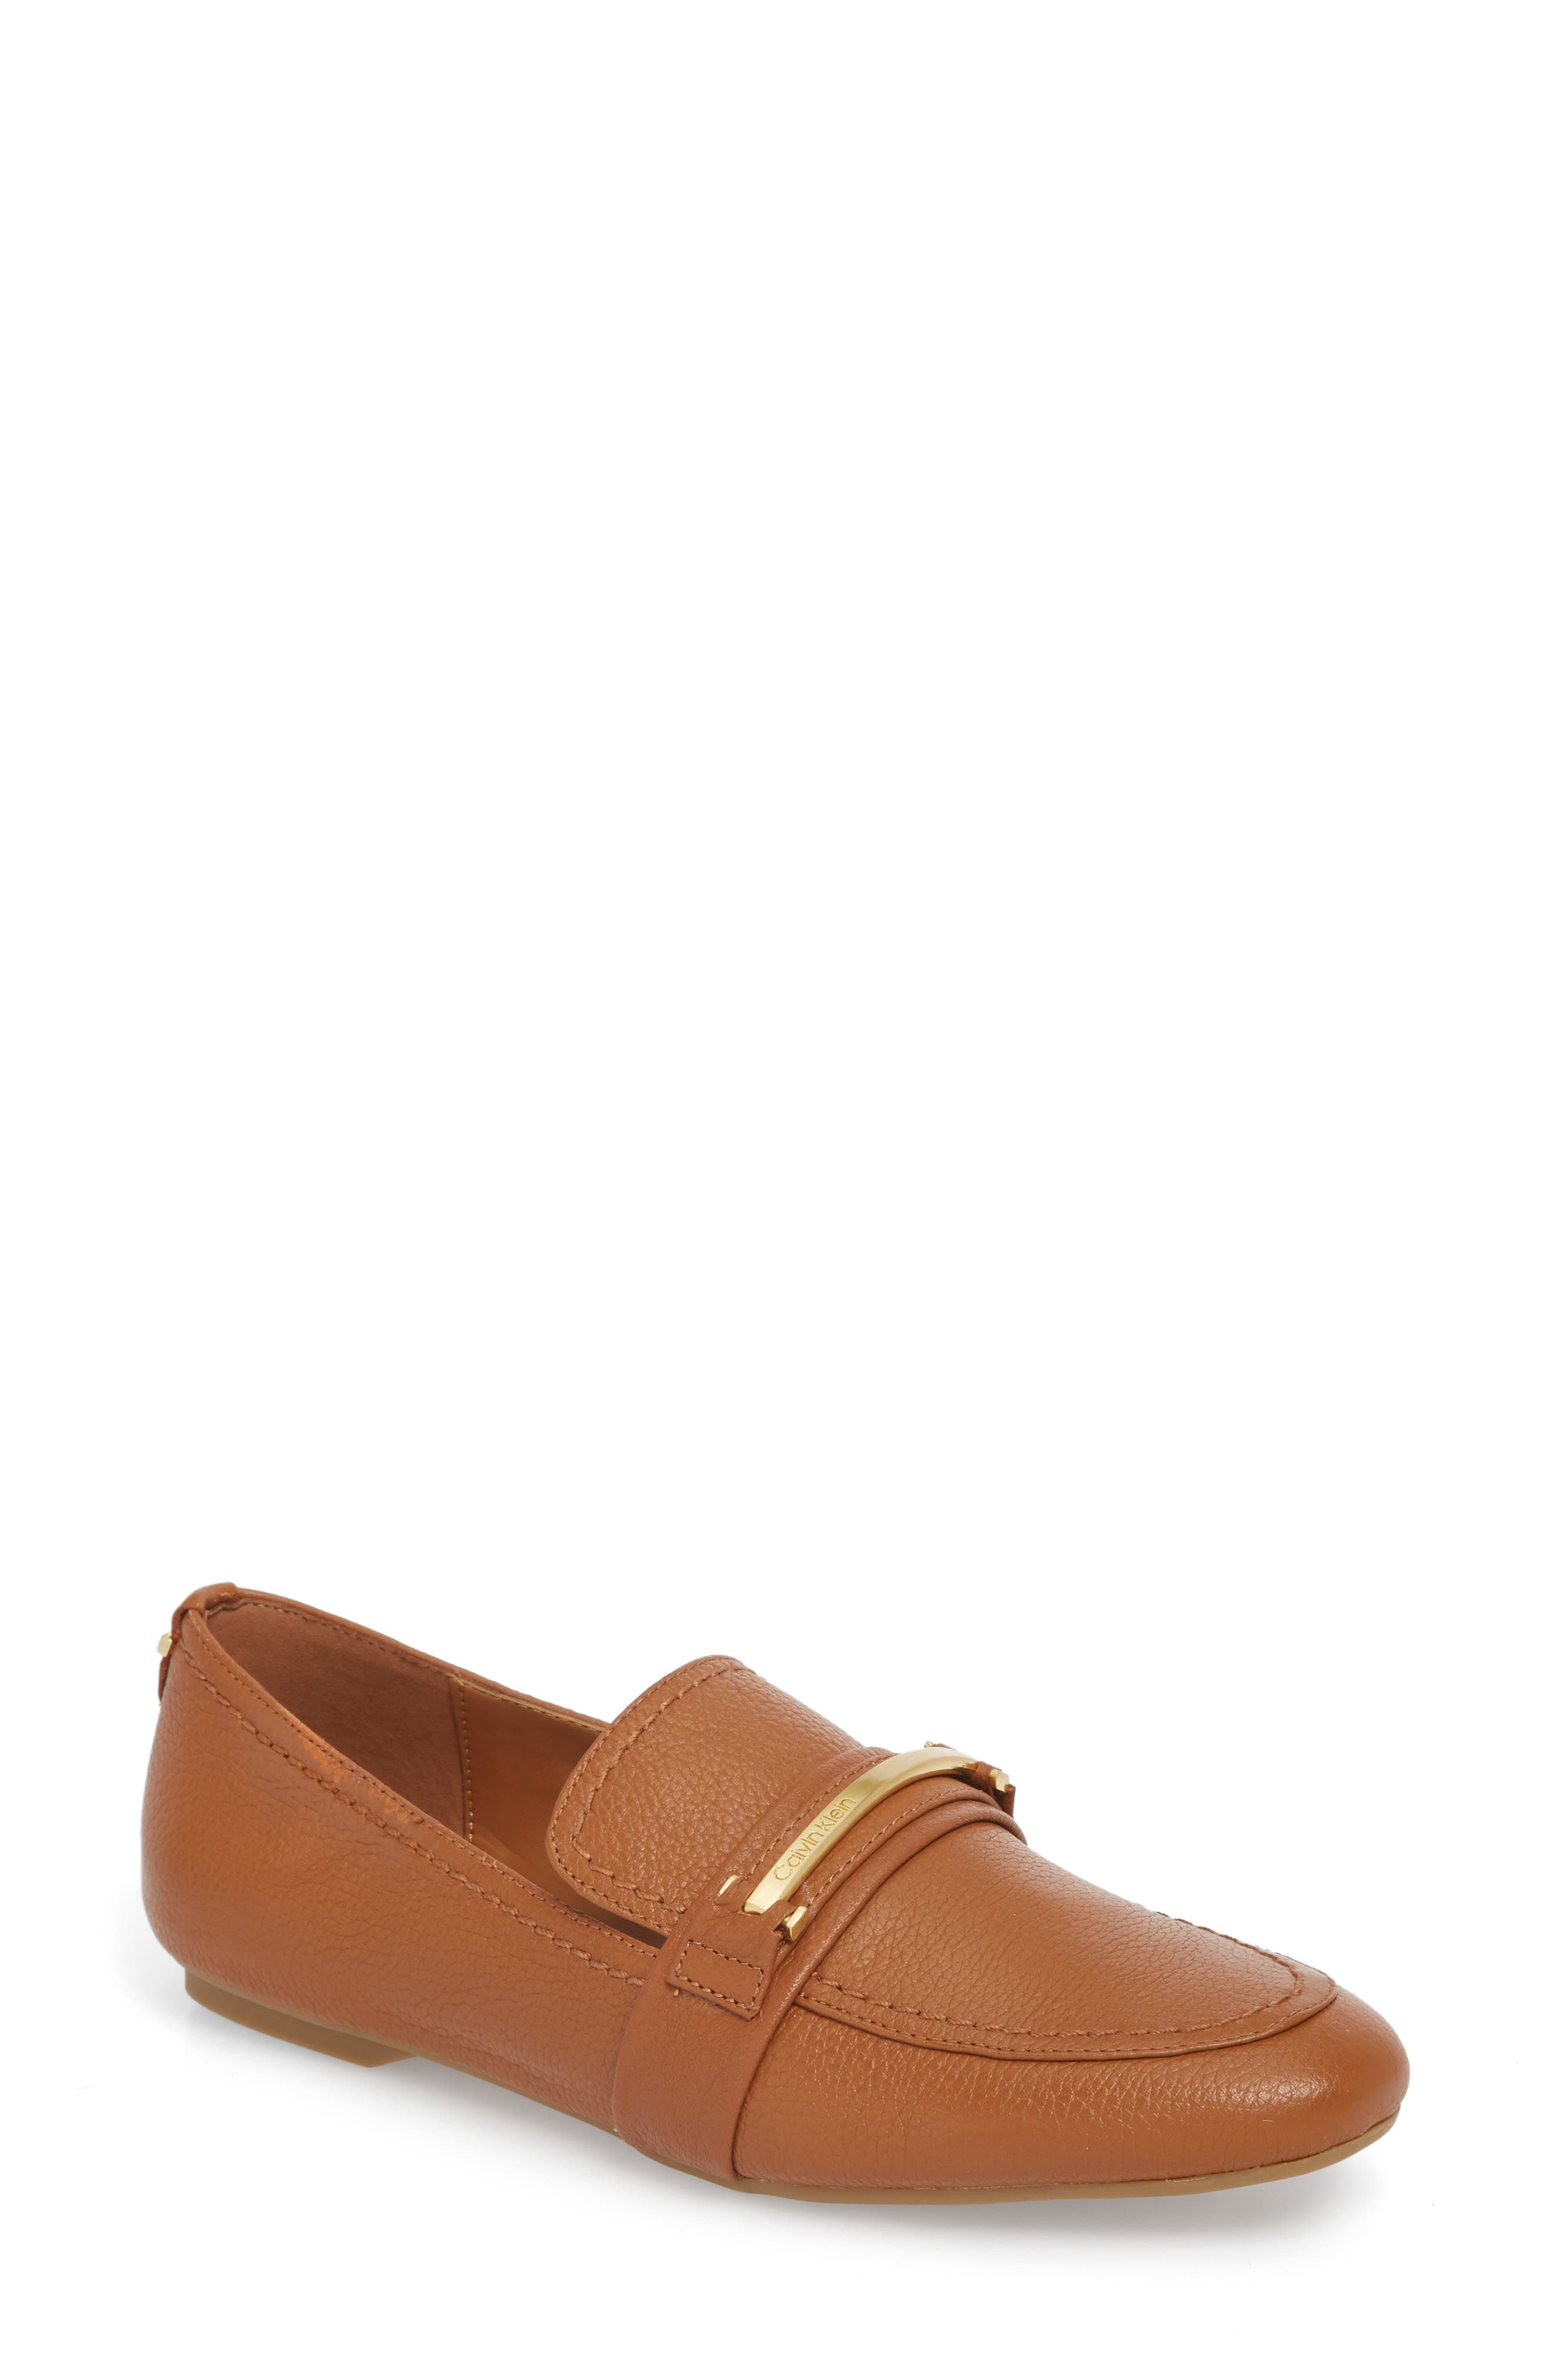 Orianna Loafer,                         Main,                         color, COGNAC LEATHER